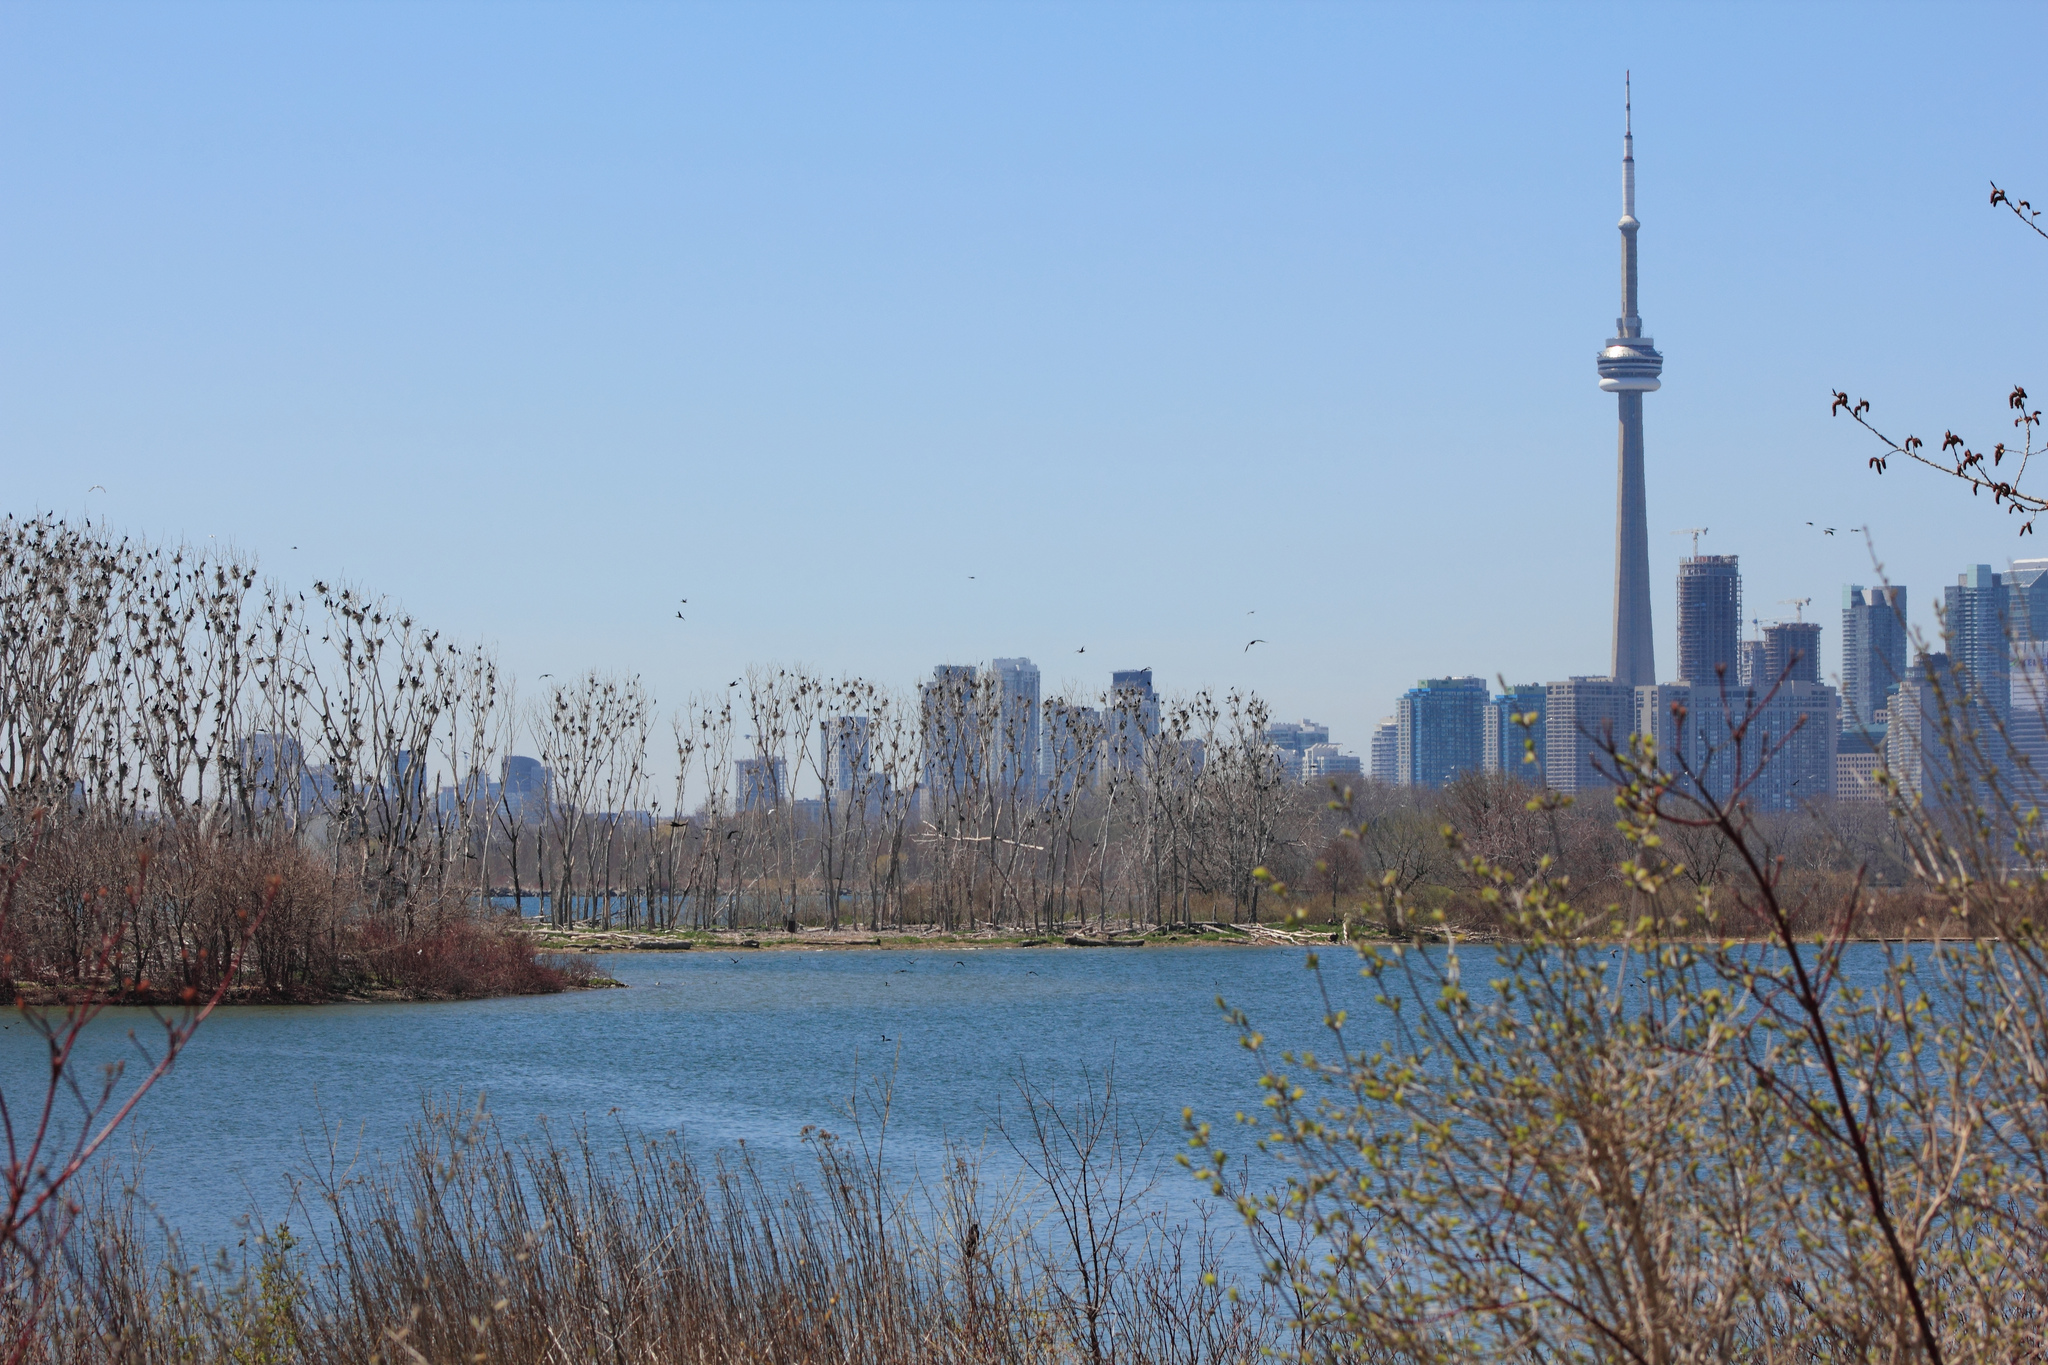 Toronto skyline with tall weeds